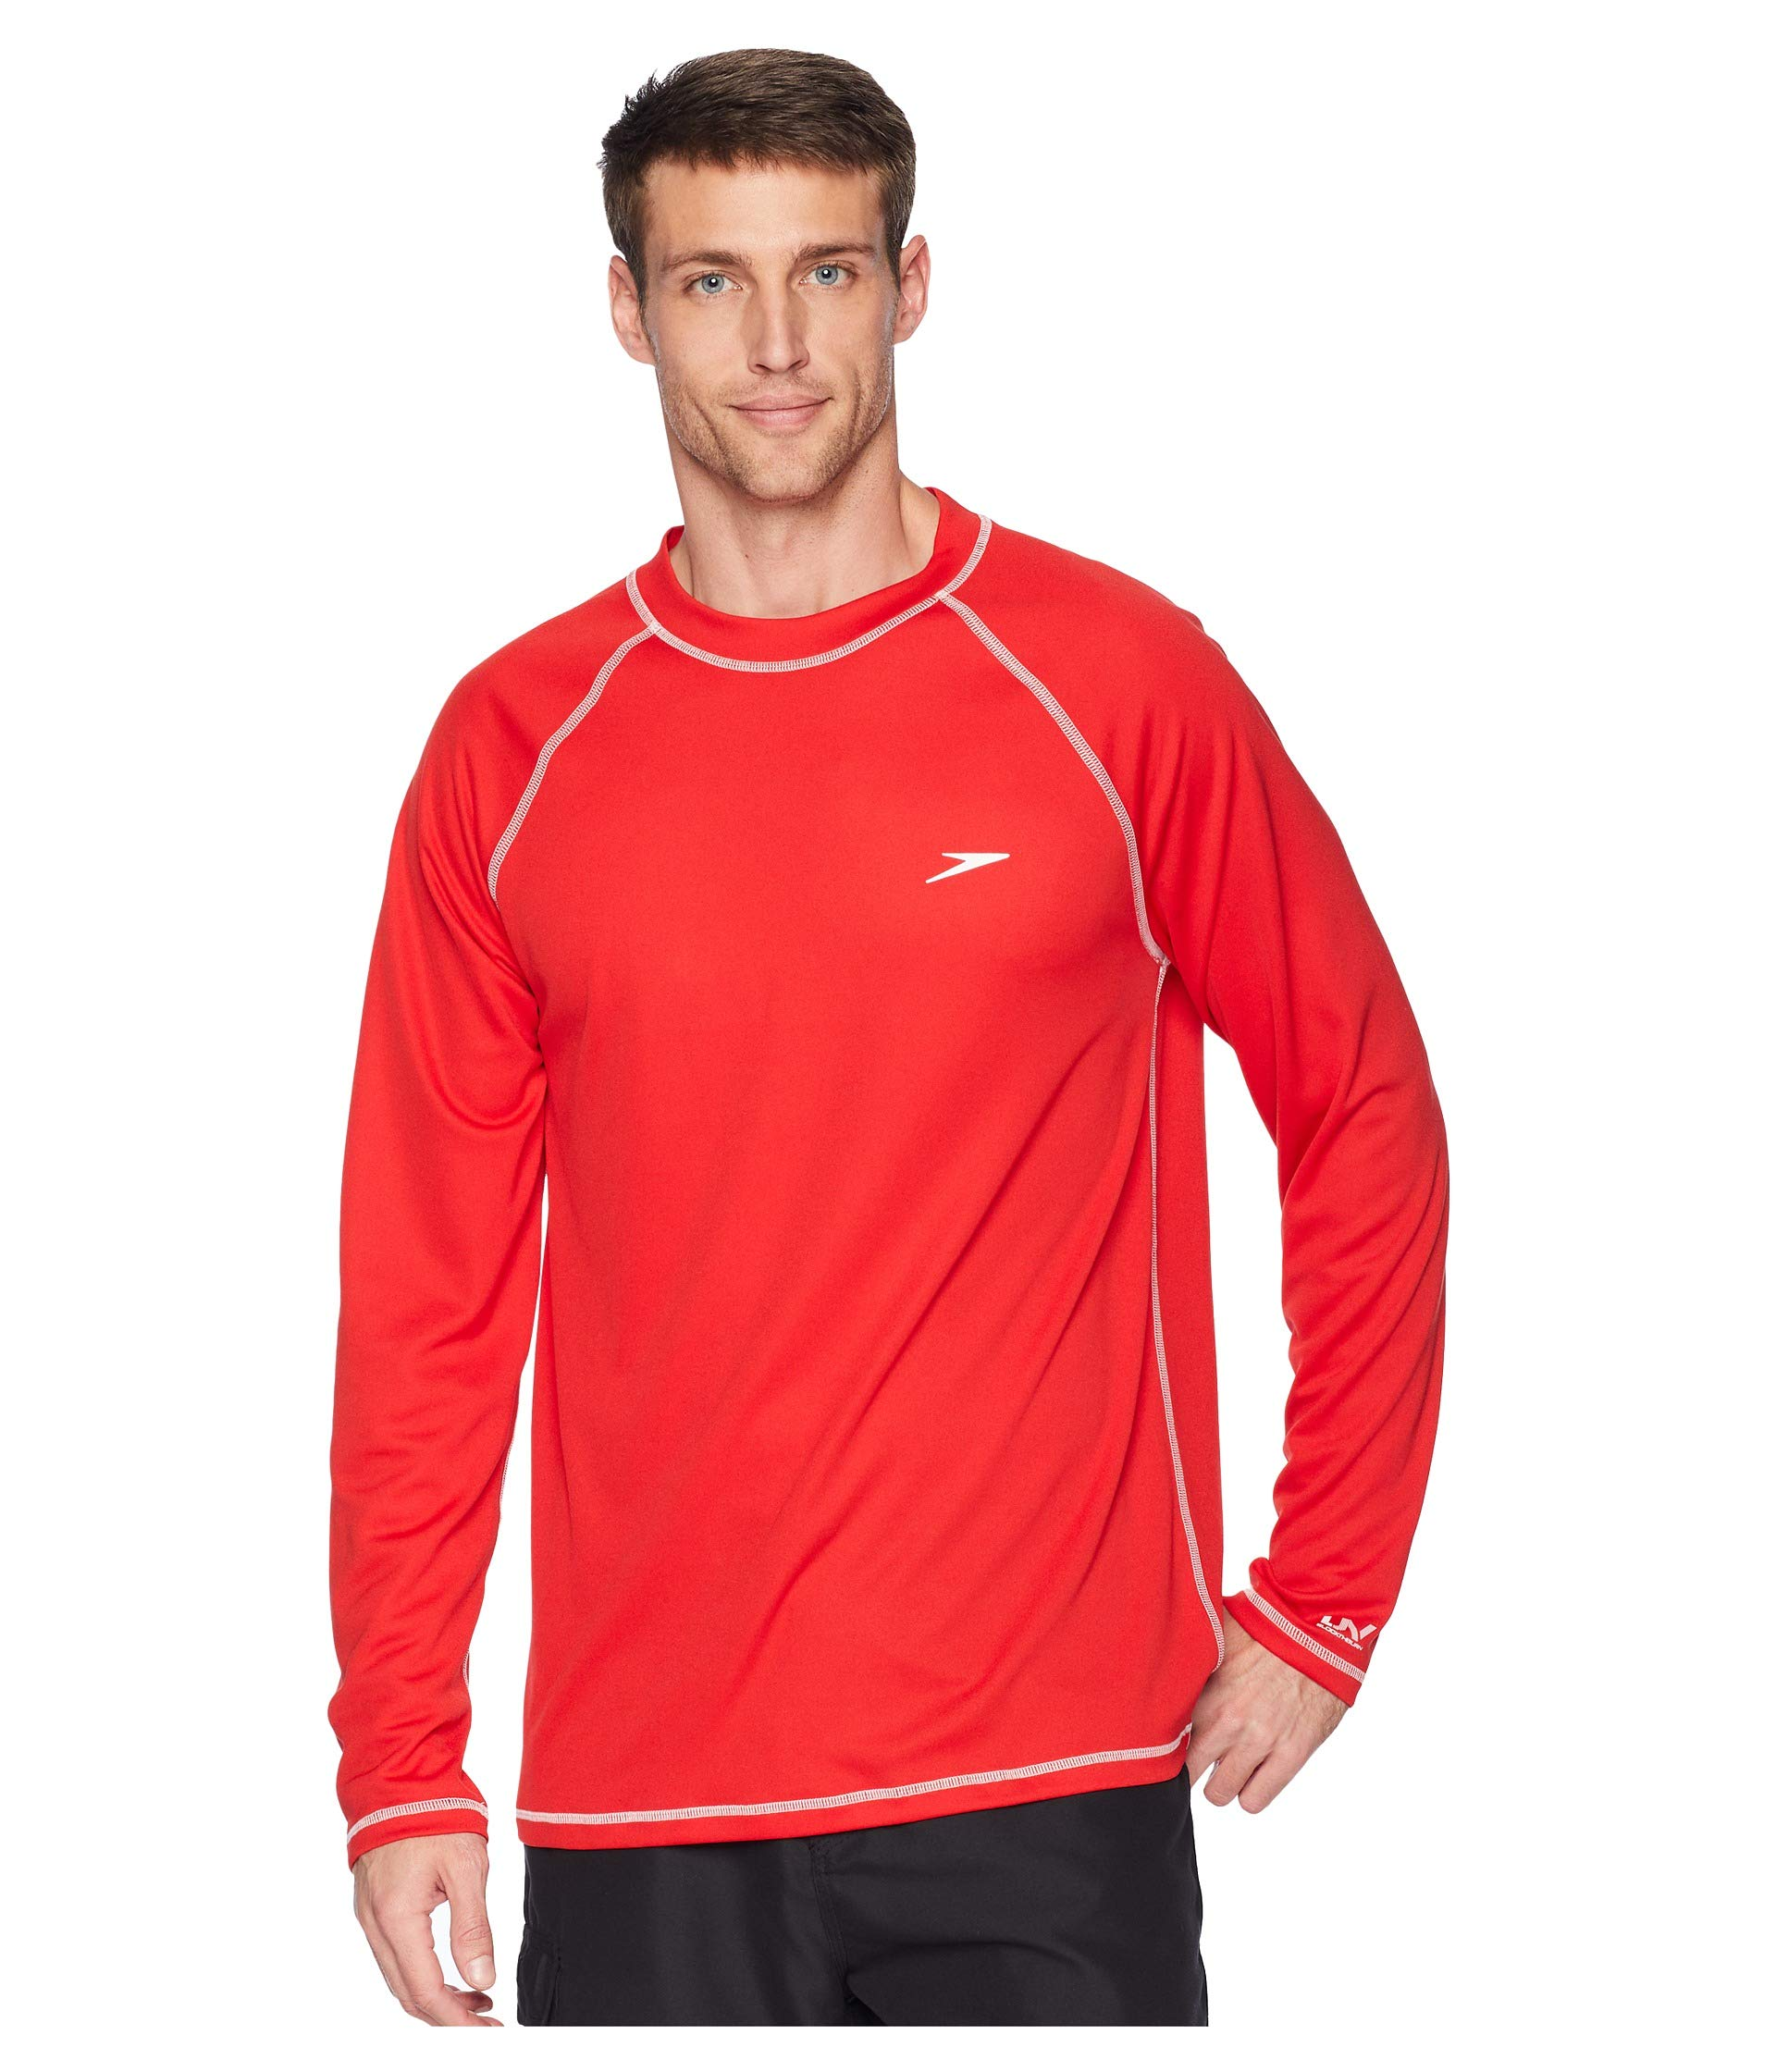 Speedo L Tee Red Easy s Swim HHxqrFB